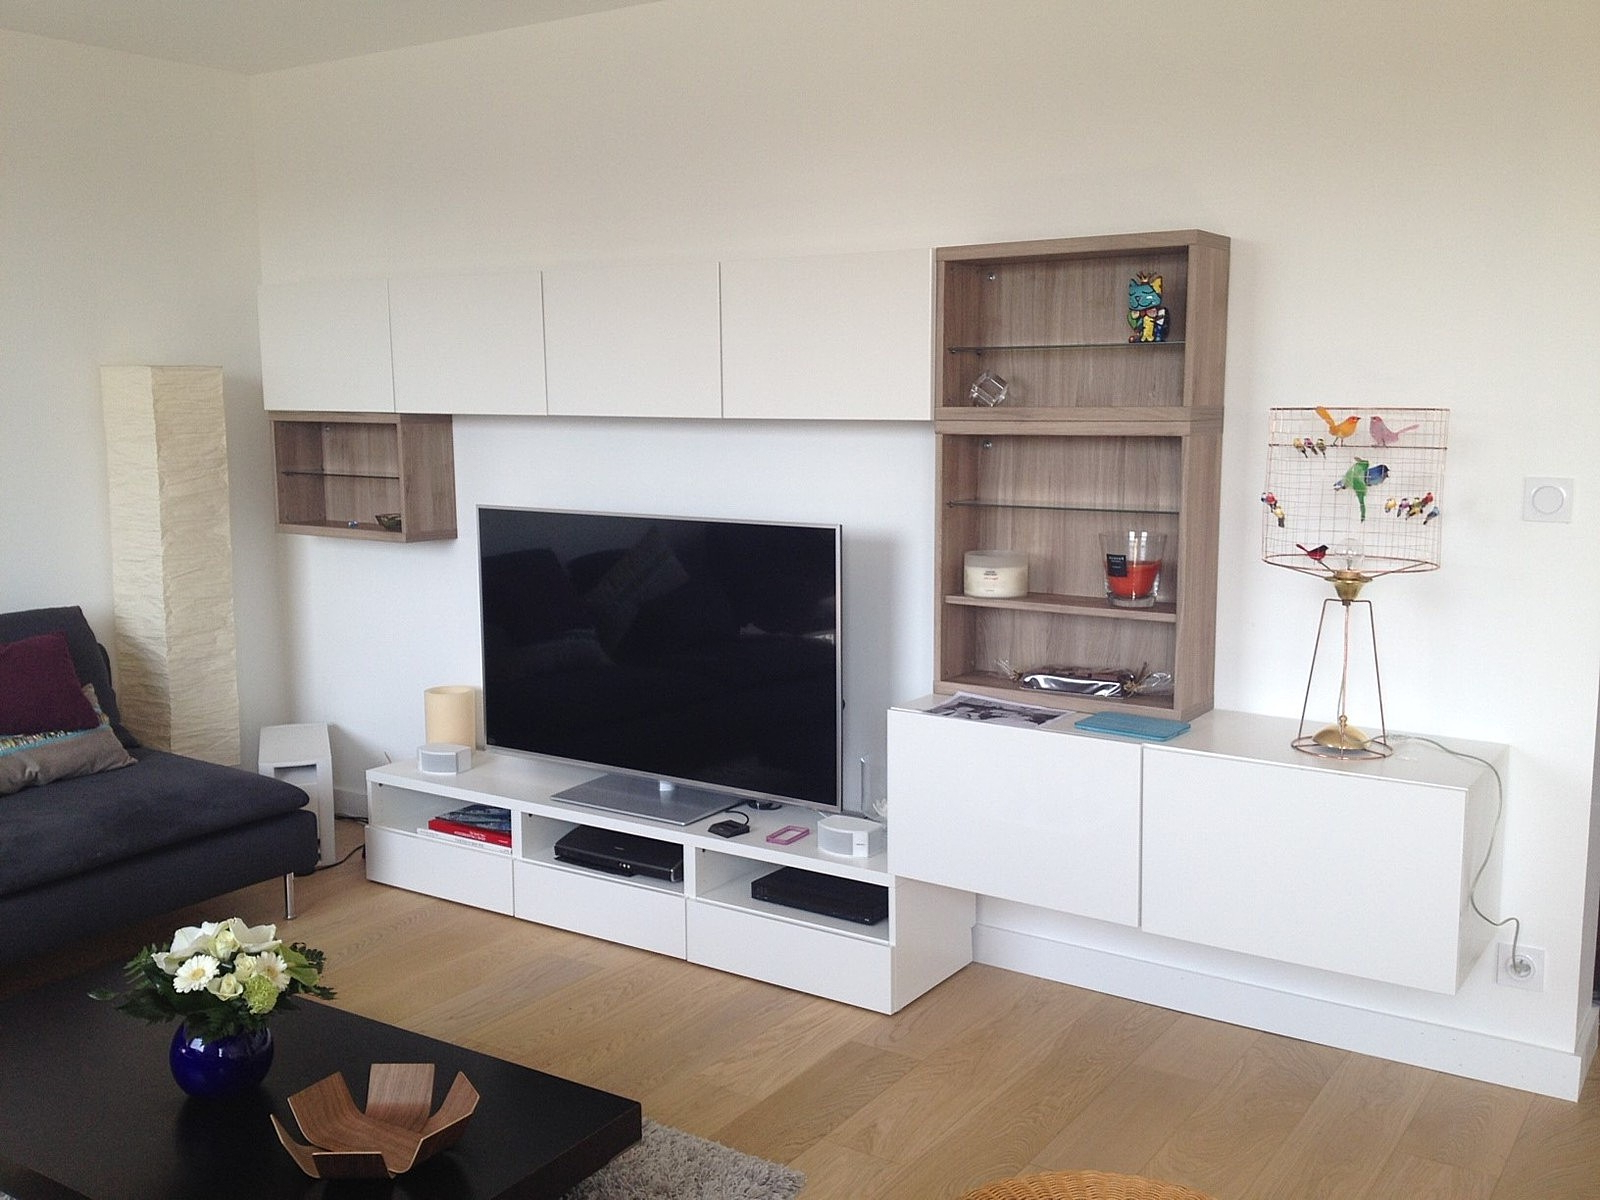 Well Known Ikea Built In Tv Cabinets Within Wall Stand Ikea Shelf Singapore Mounting Sektion Cabinets Lack Tv (View 19 of 20)